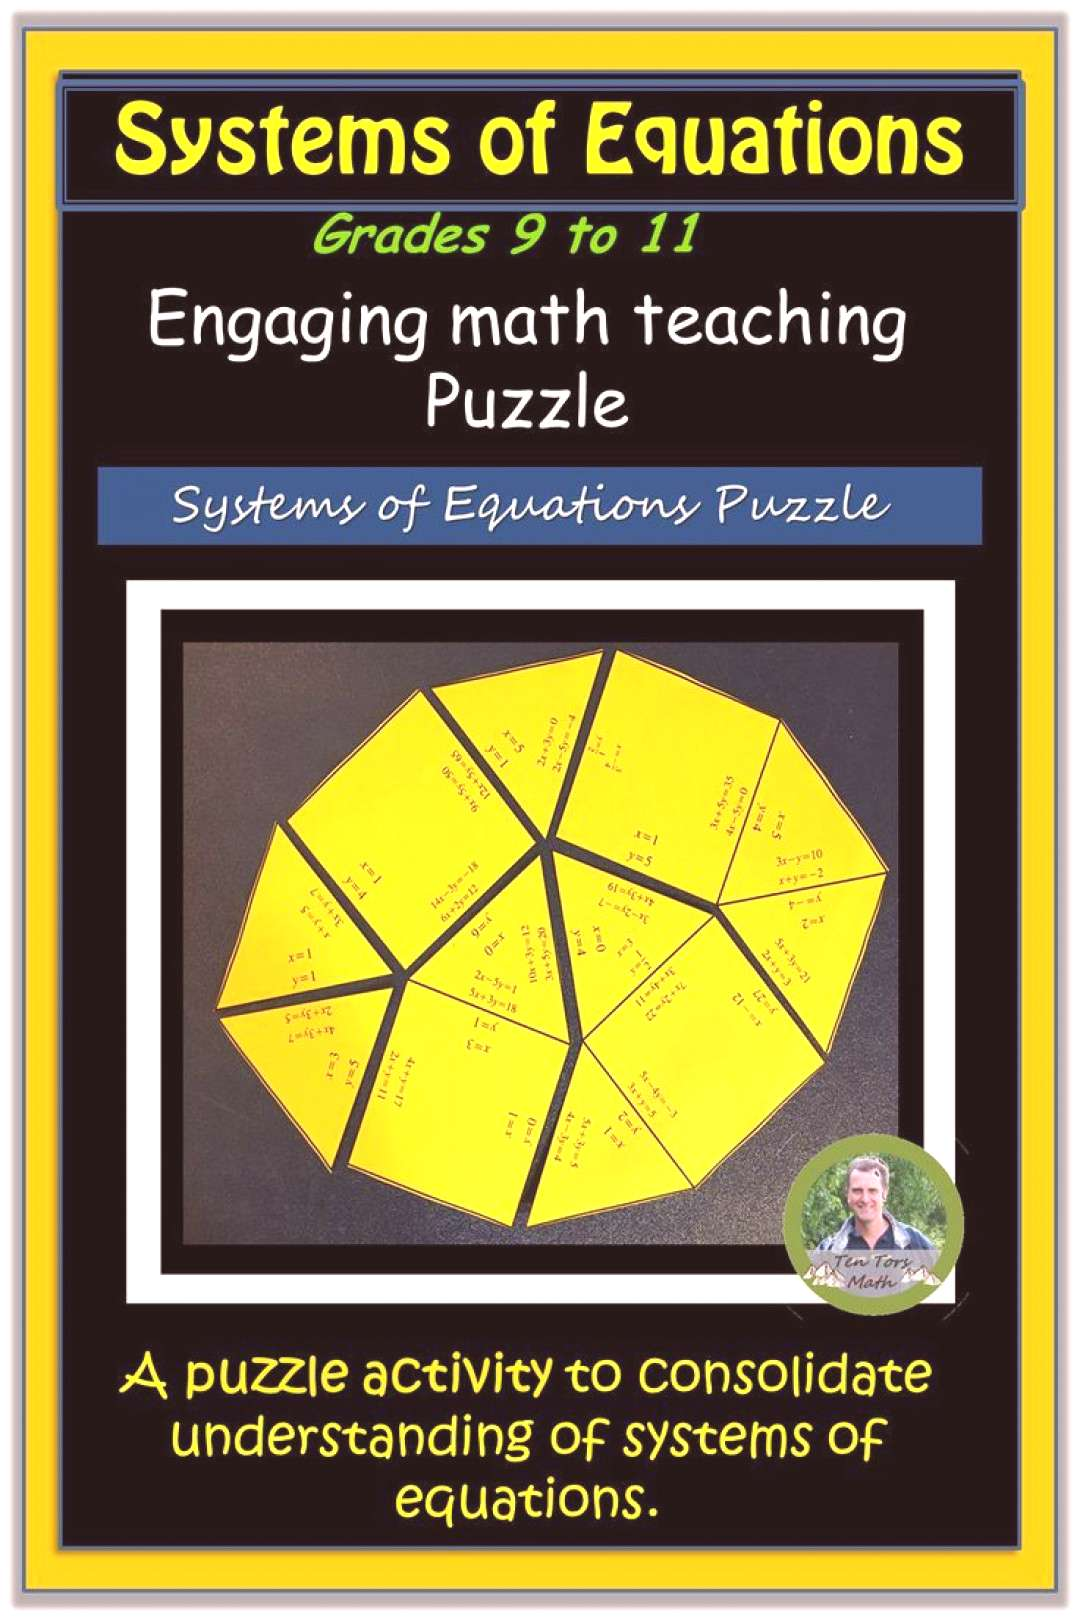 Systems of Equations Puzzle Activity Solving Systems of Equations Puzzle. Classroom math resource a